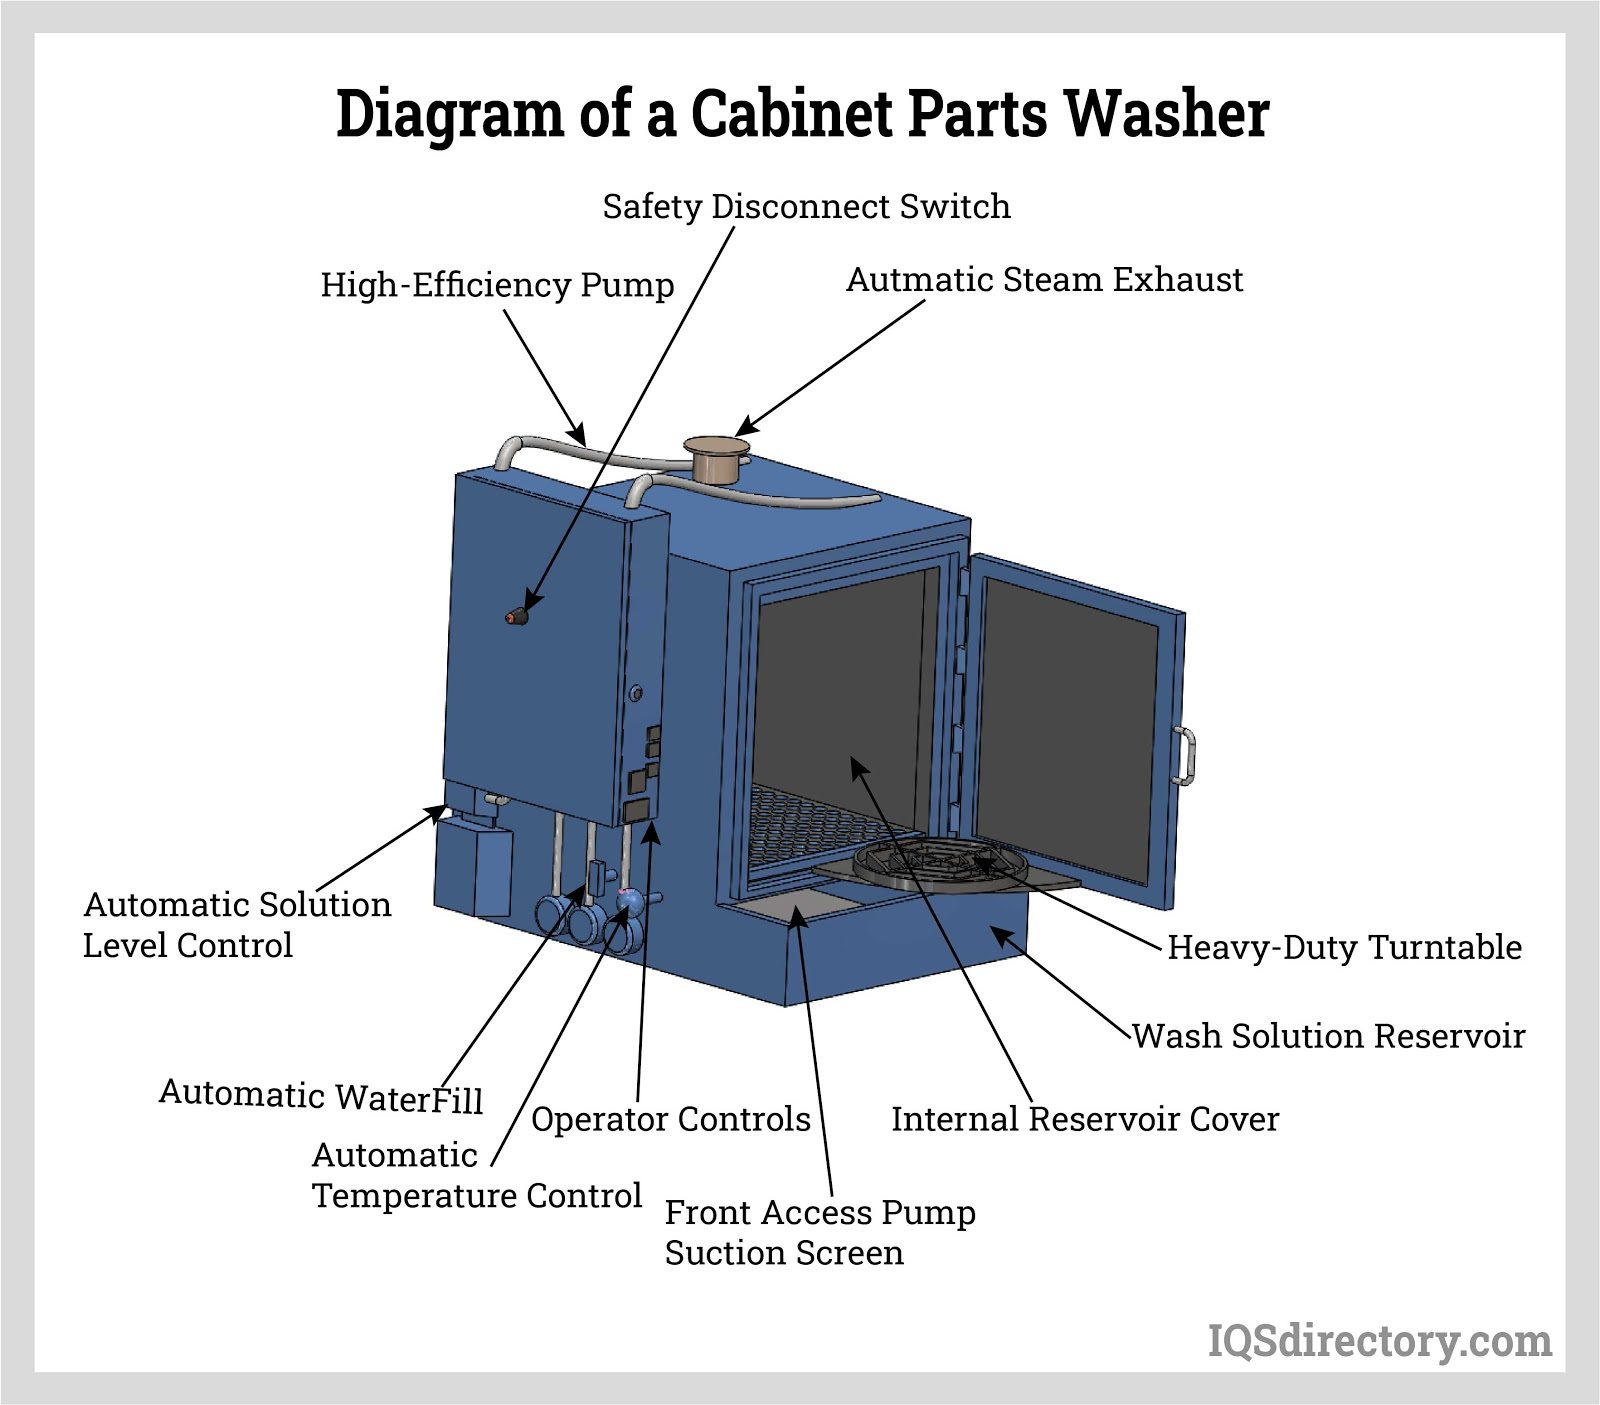 Types of Parts Washers